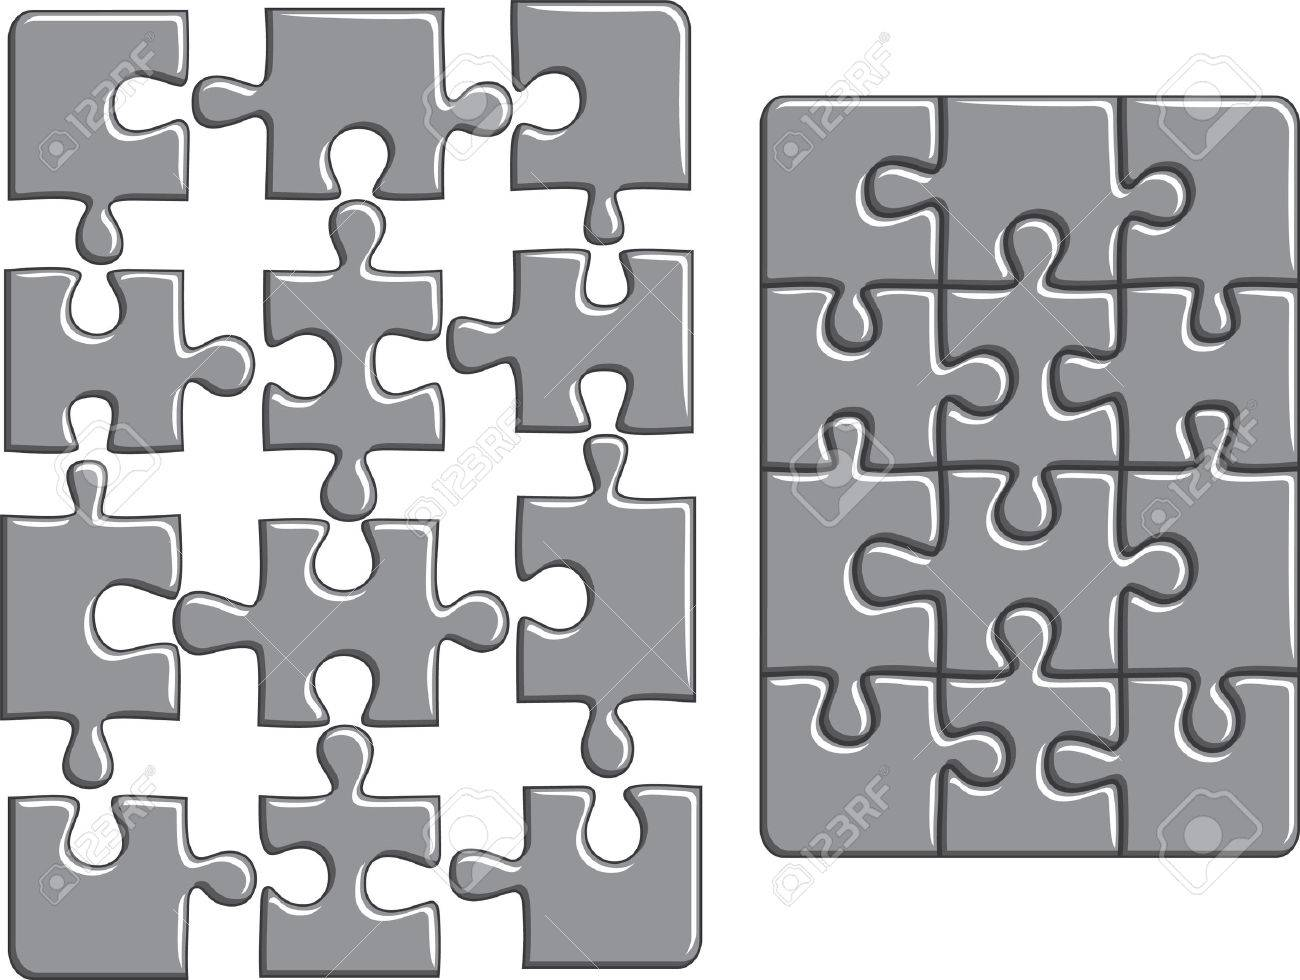 Puzzle background.  illustration Stock Vector - 8553178